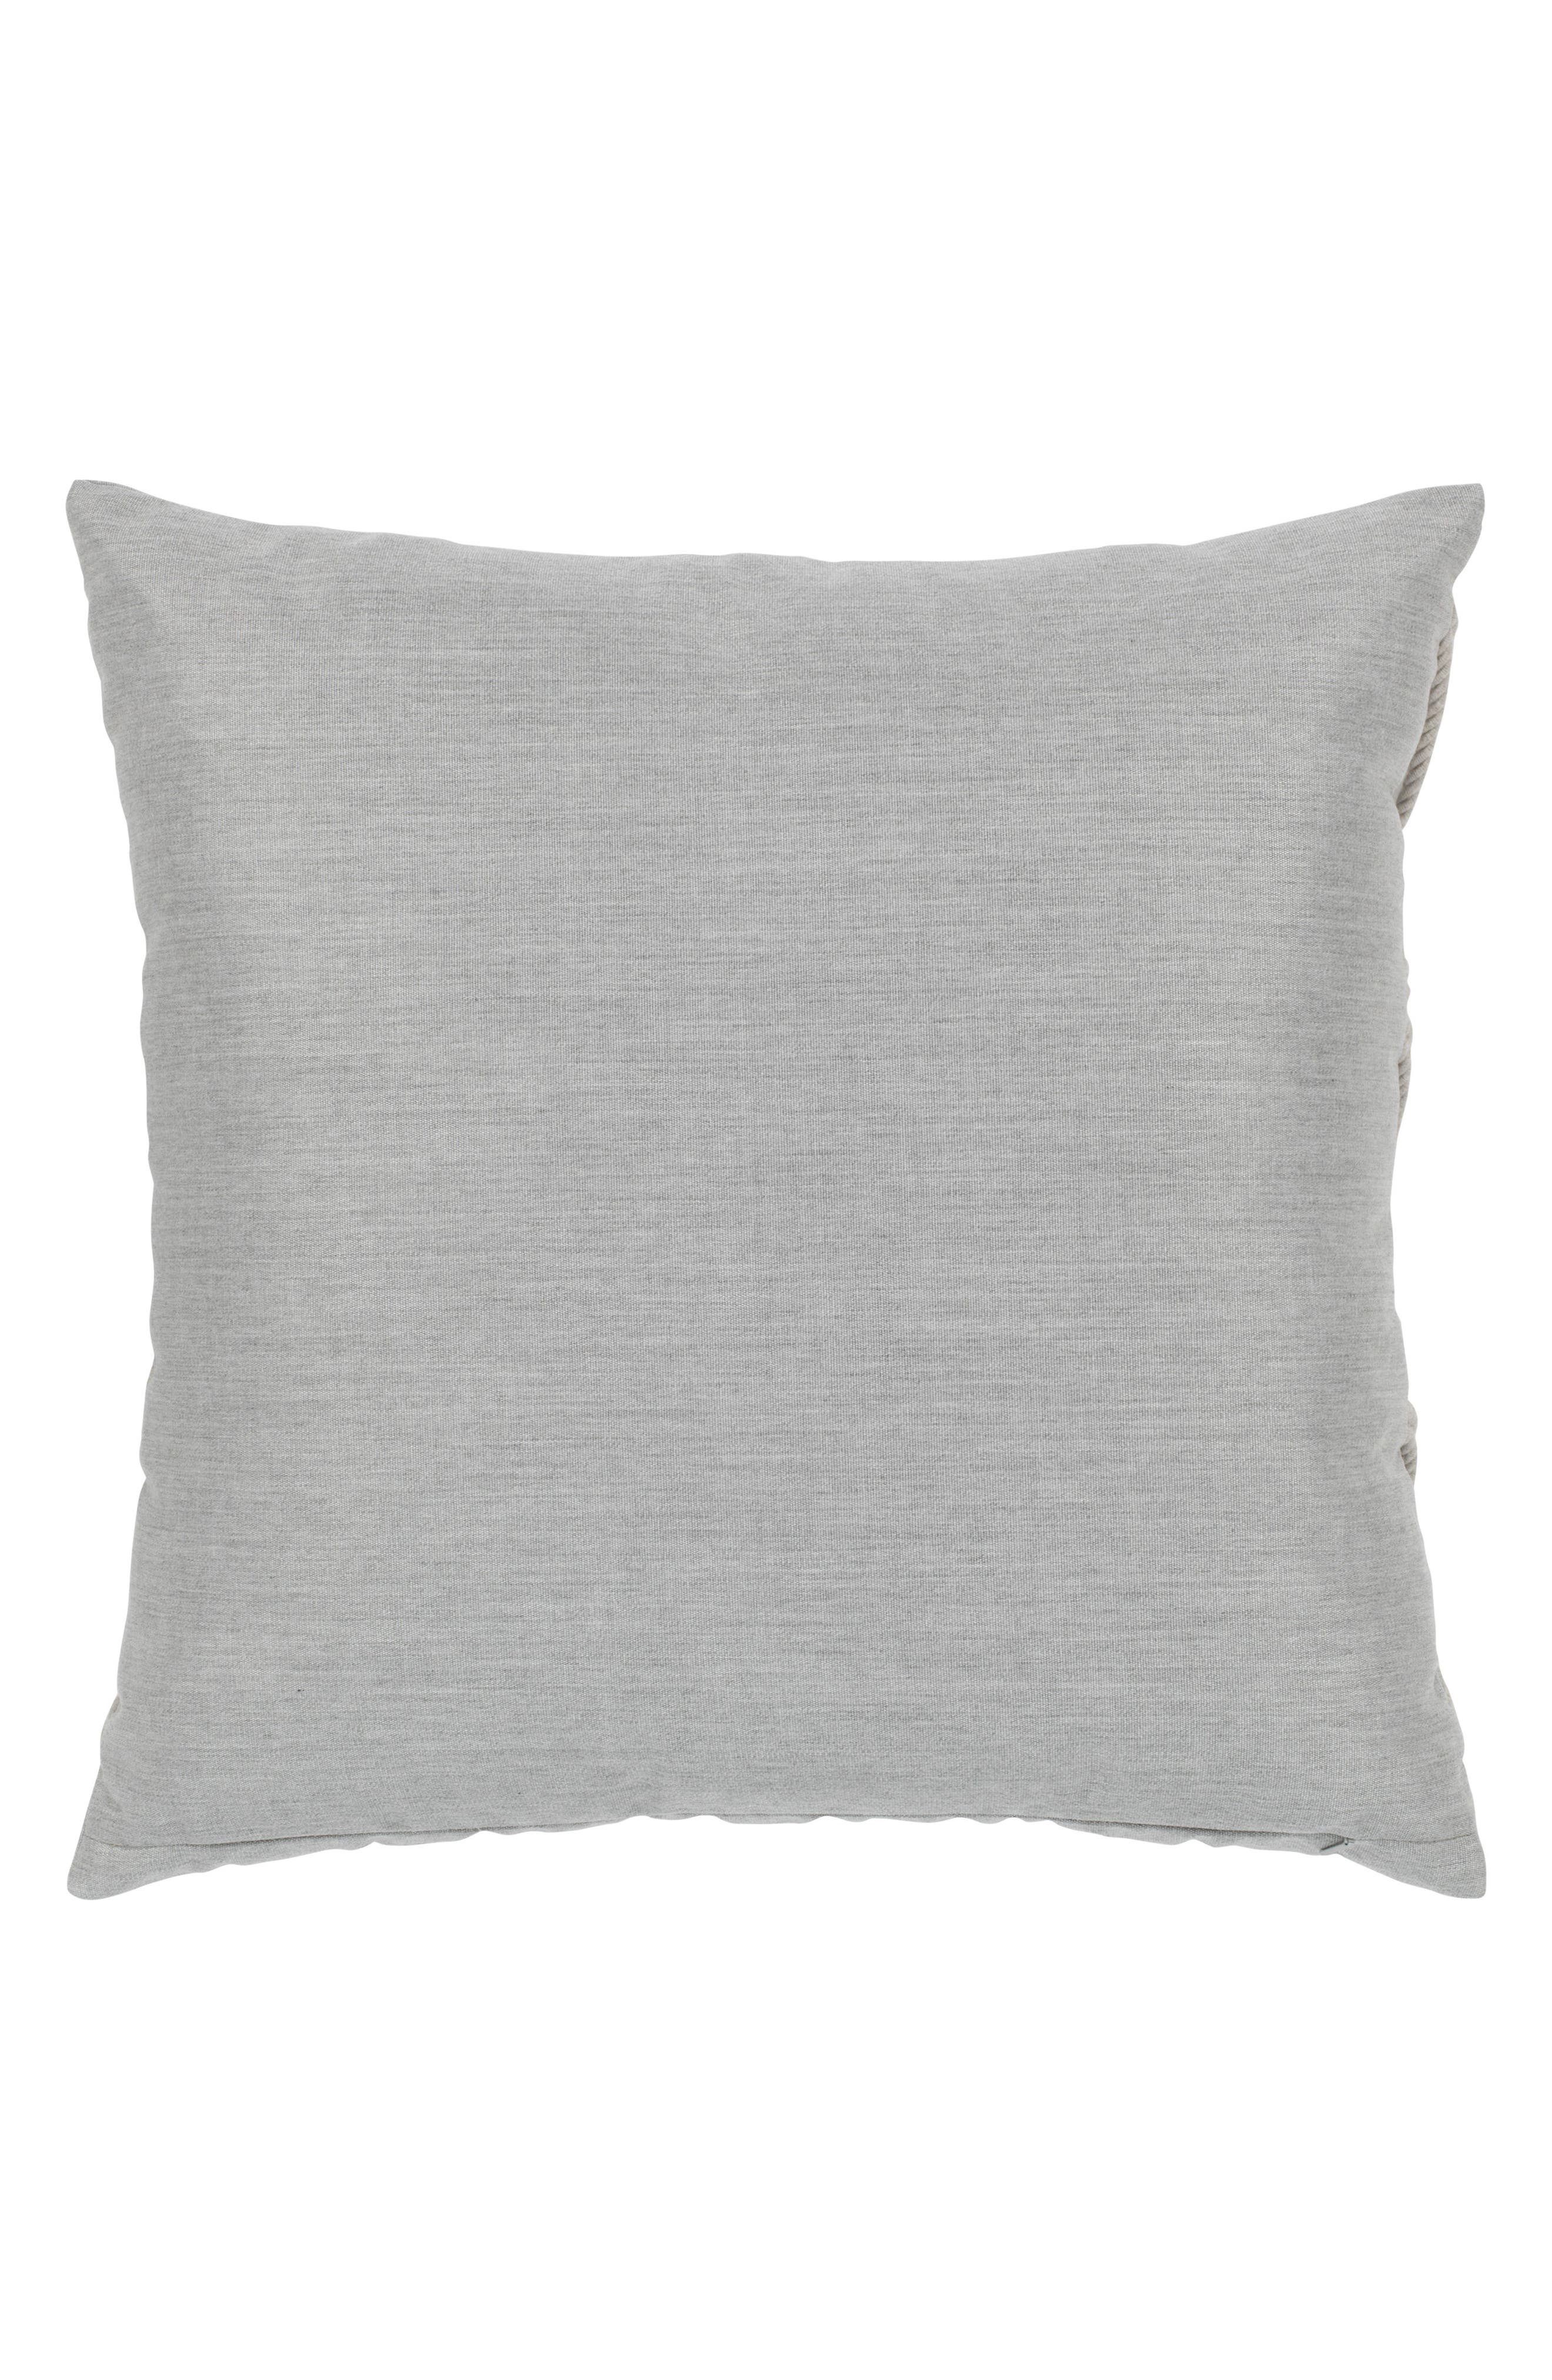 Granite Rope Indoor/Outdoor Accent Pillow,                             Alternate thumbnail 2, color,                             020